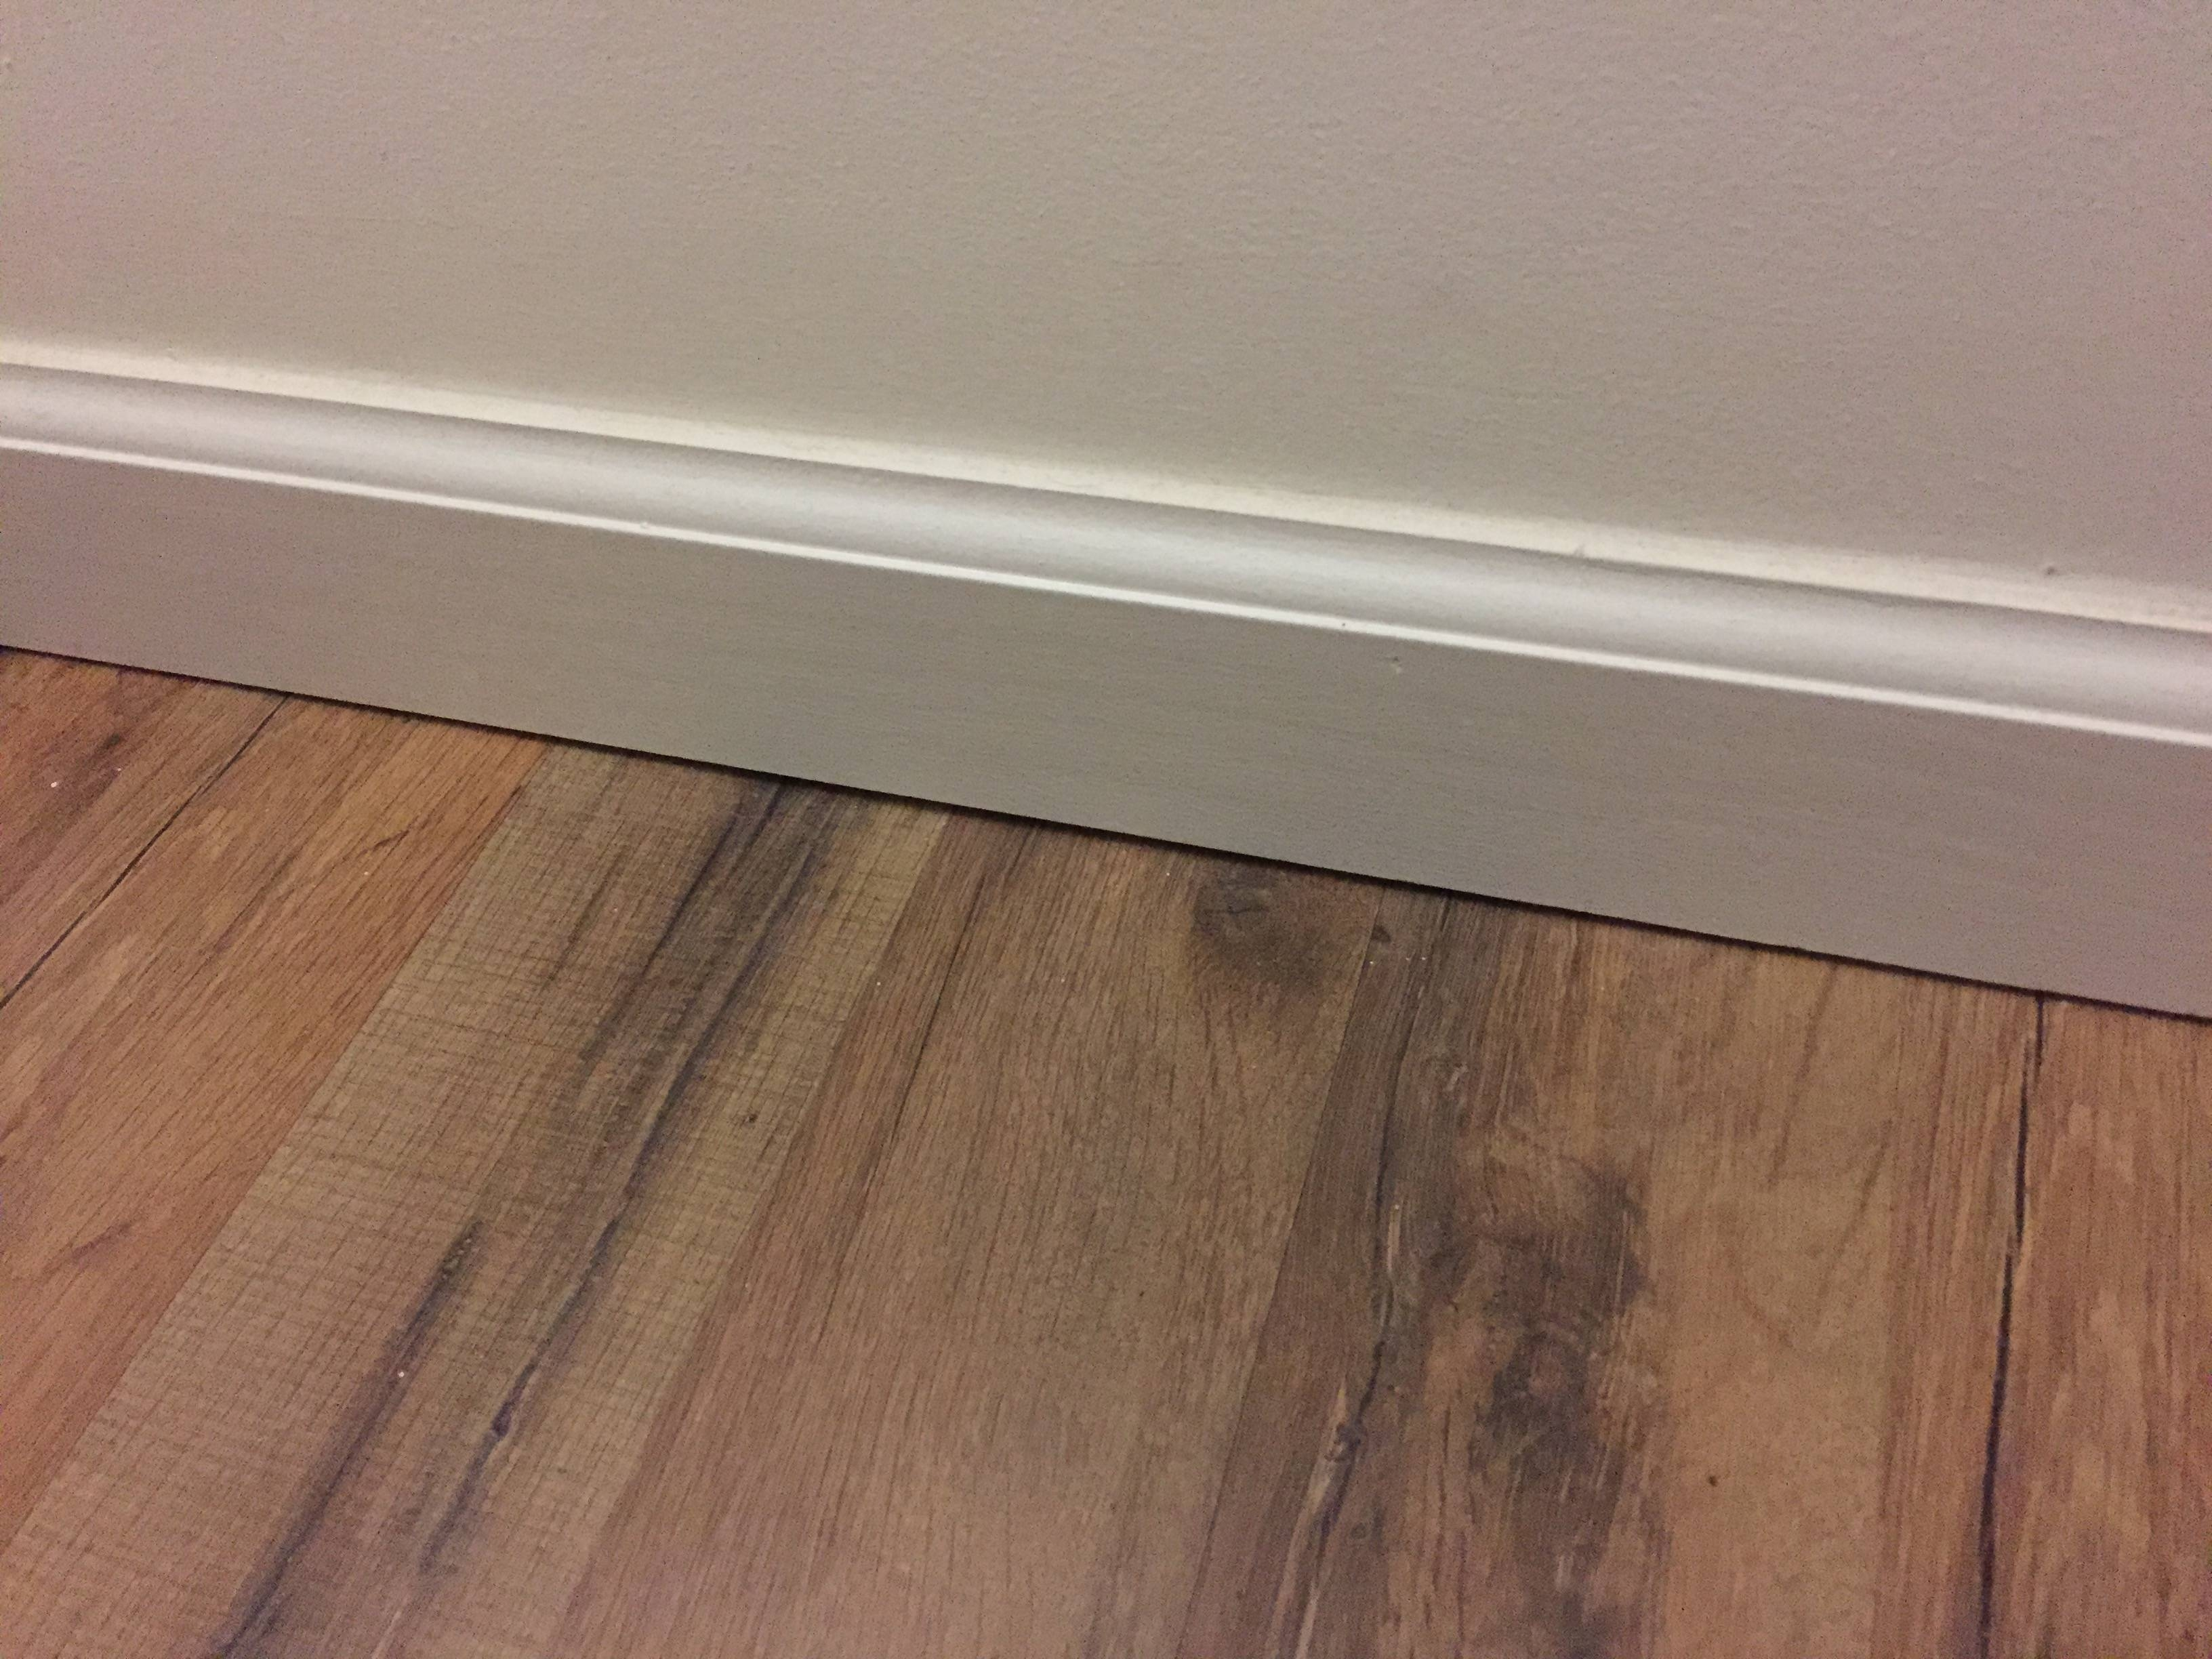 Caulk Wood Floor Gaps